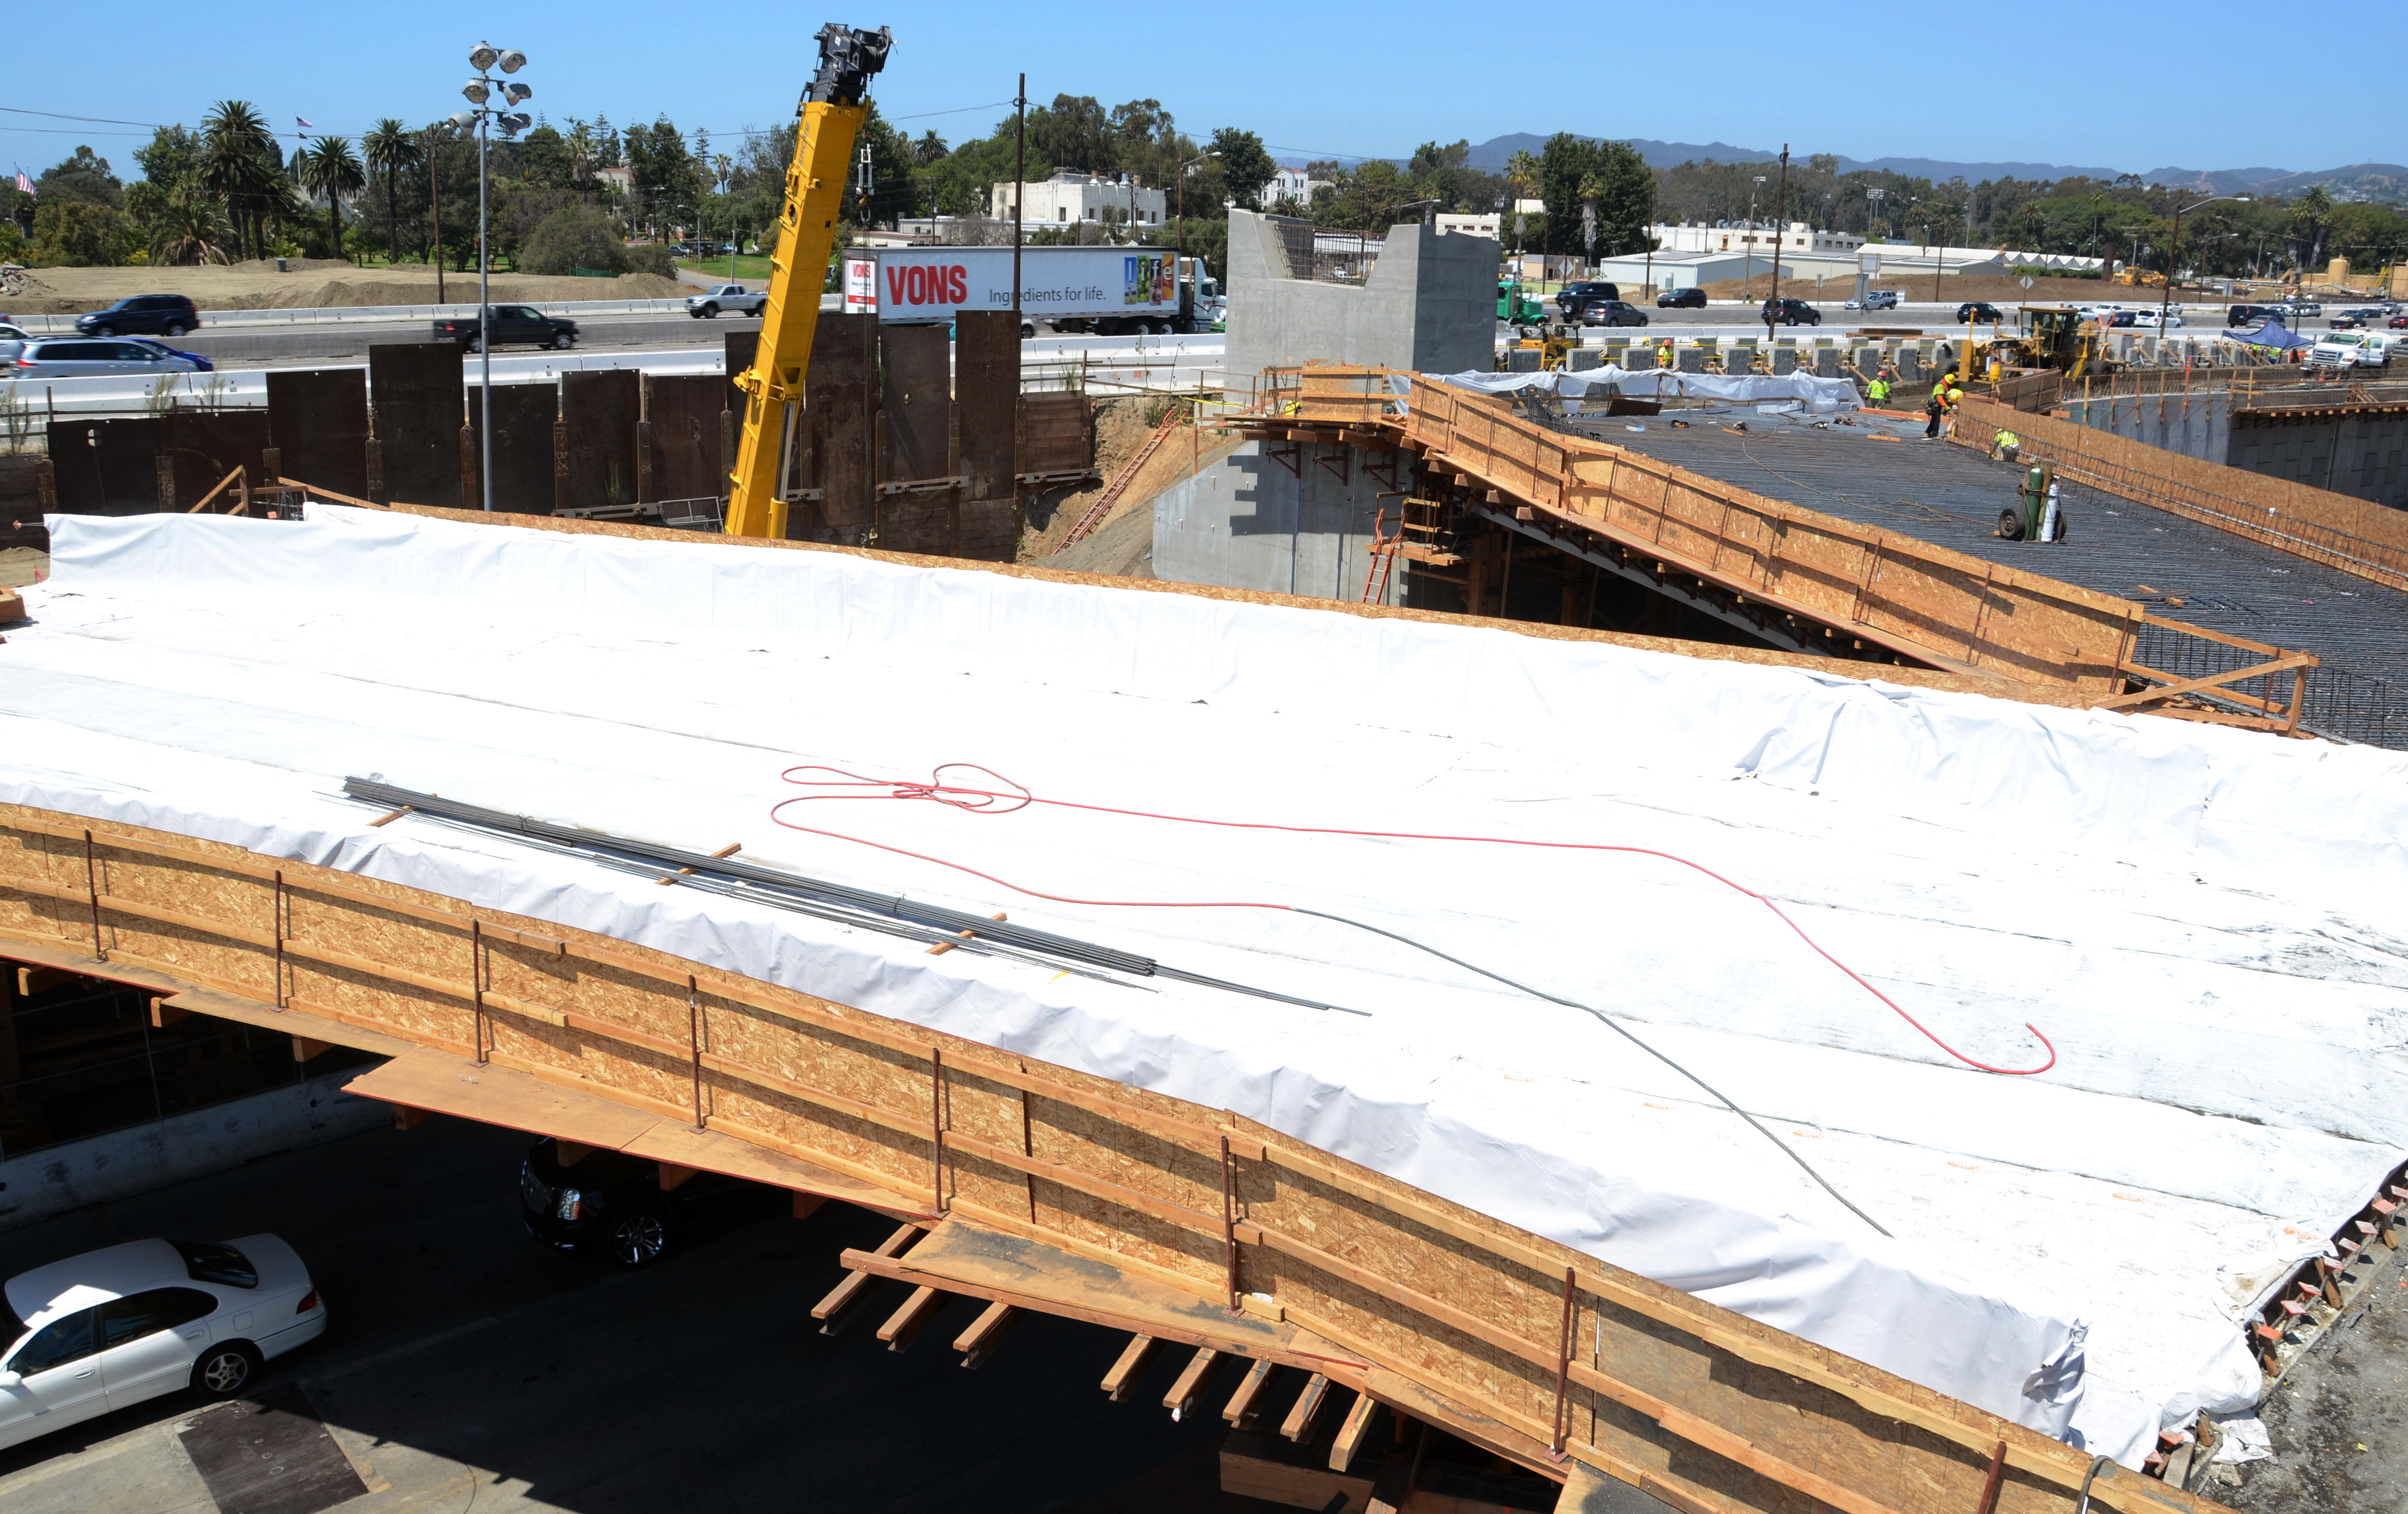 Looking northwest, this photo shows the support for a flyover  ramp at the upper center.